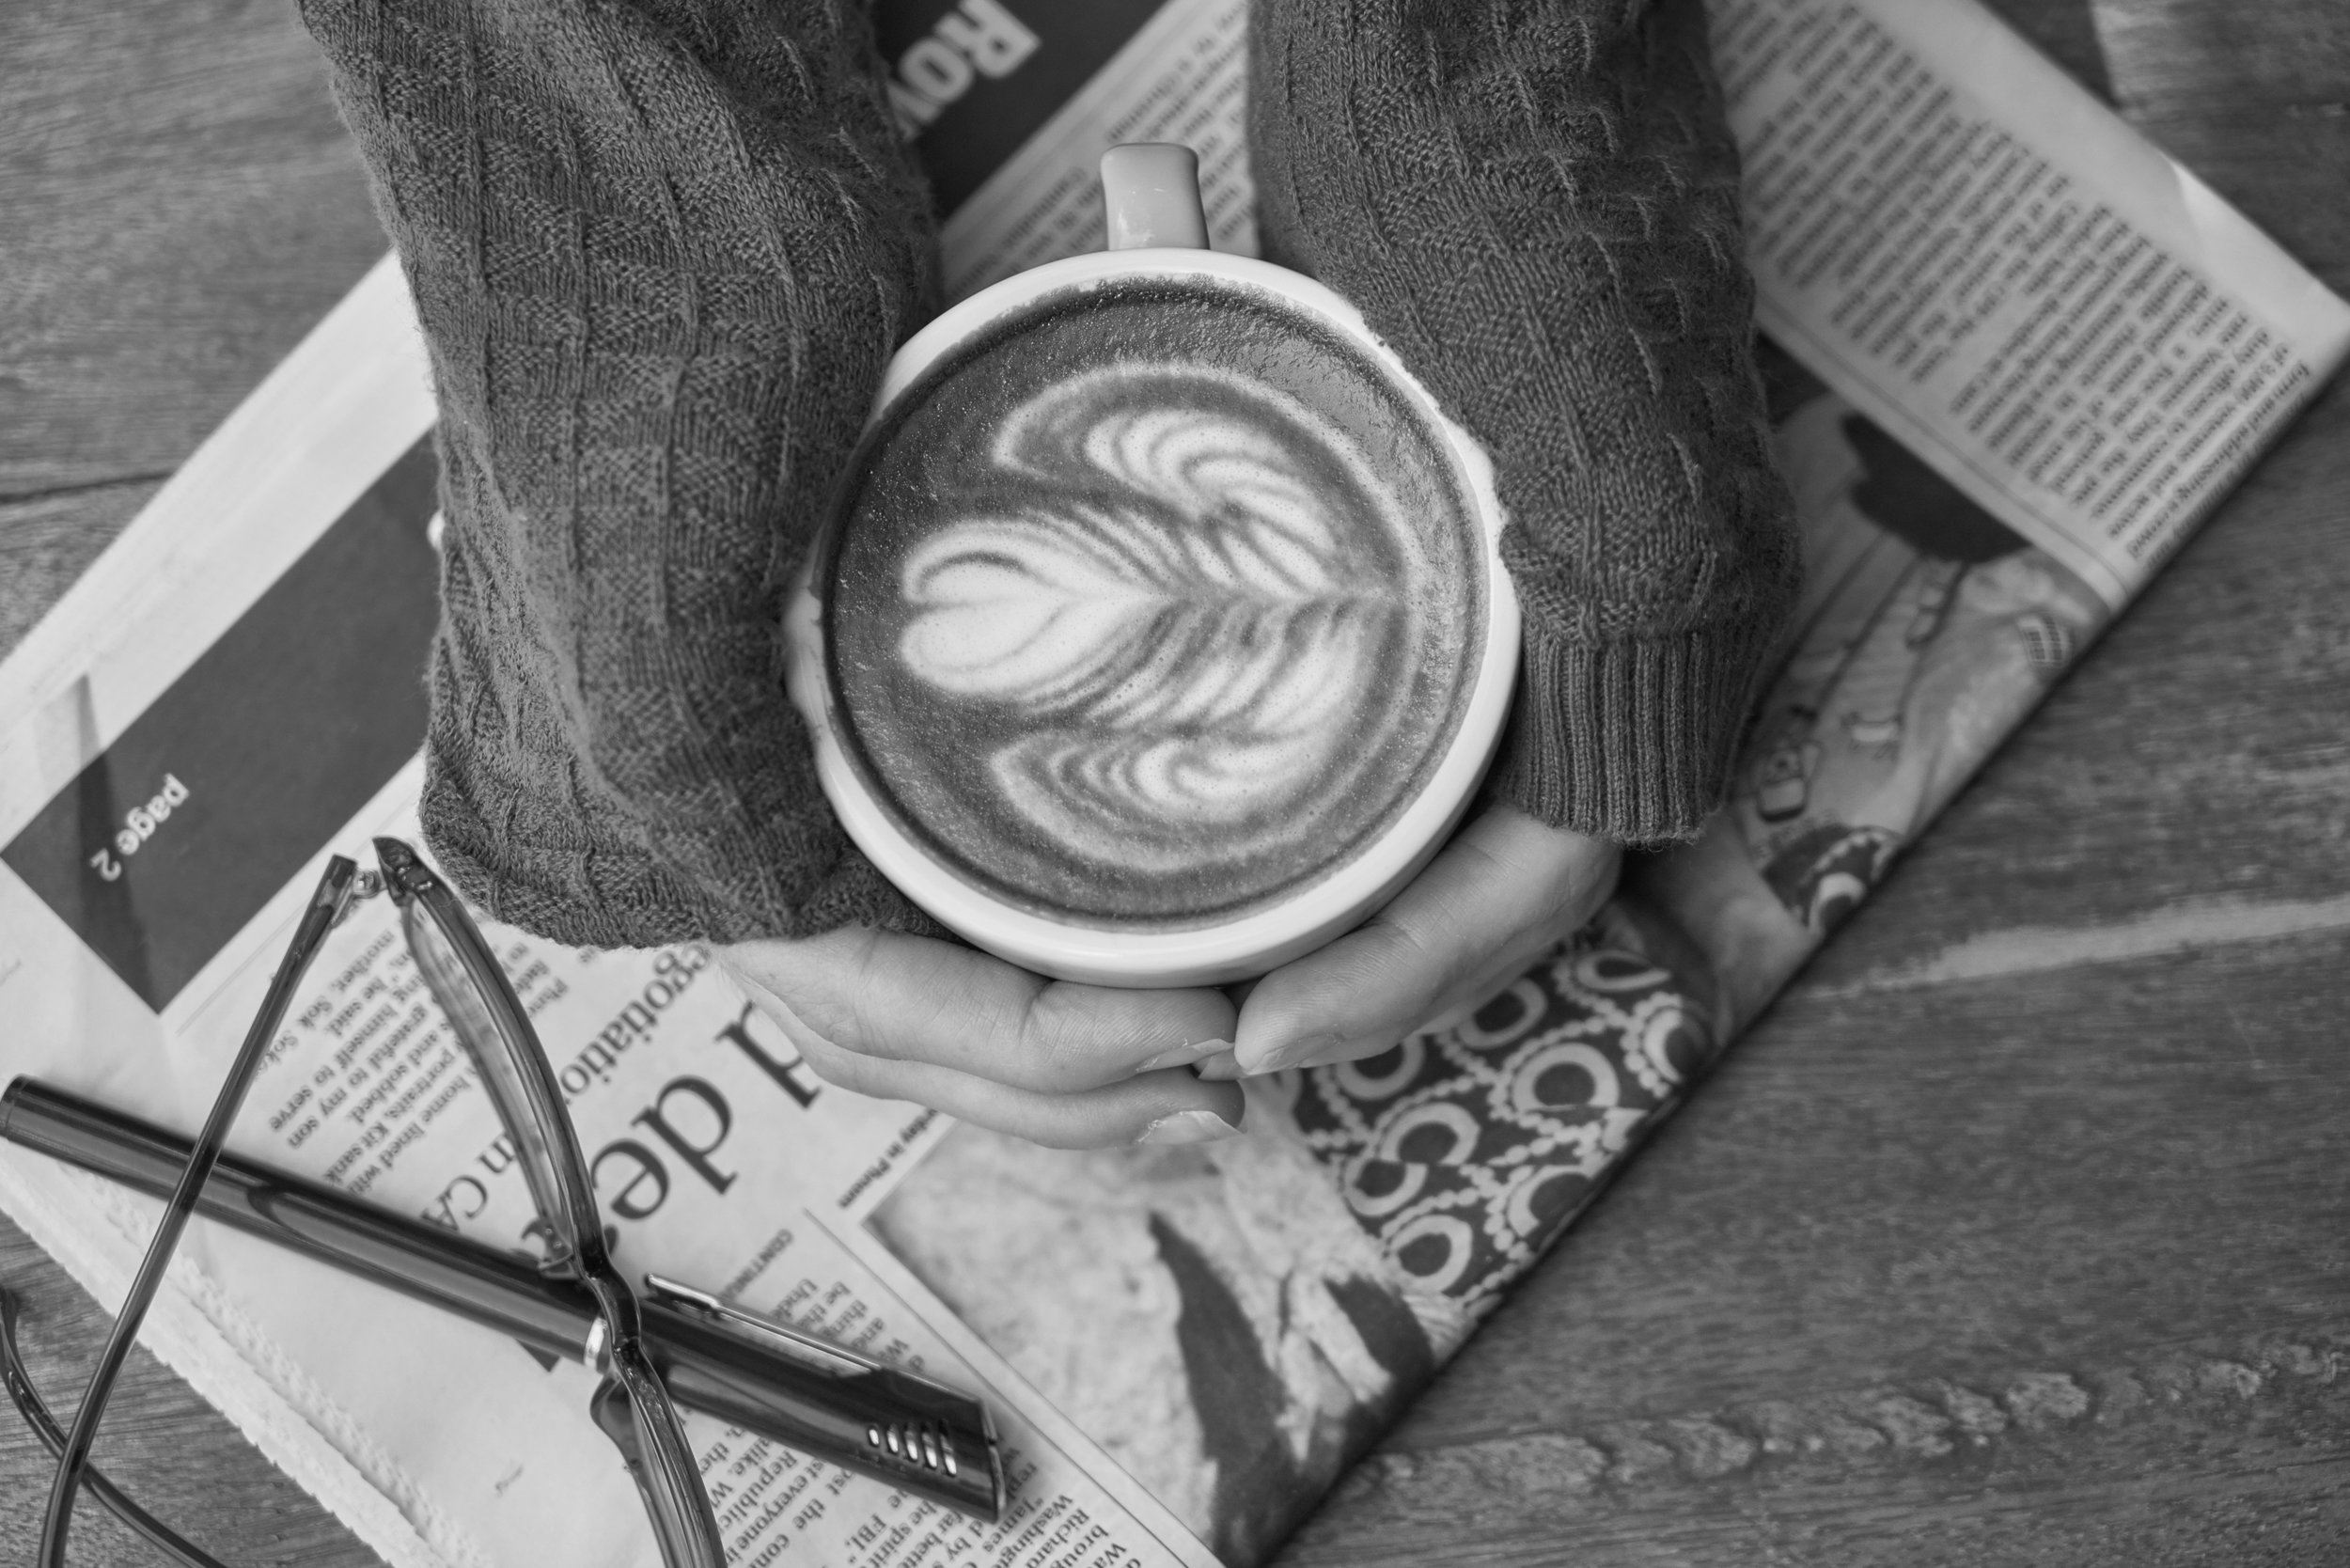 Two hands holding a coffee cup with latte art atop a newspaper.